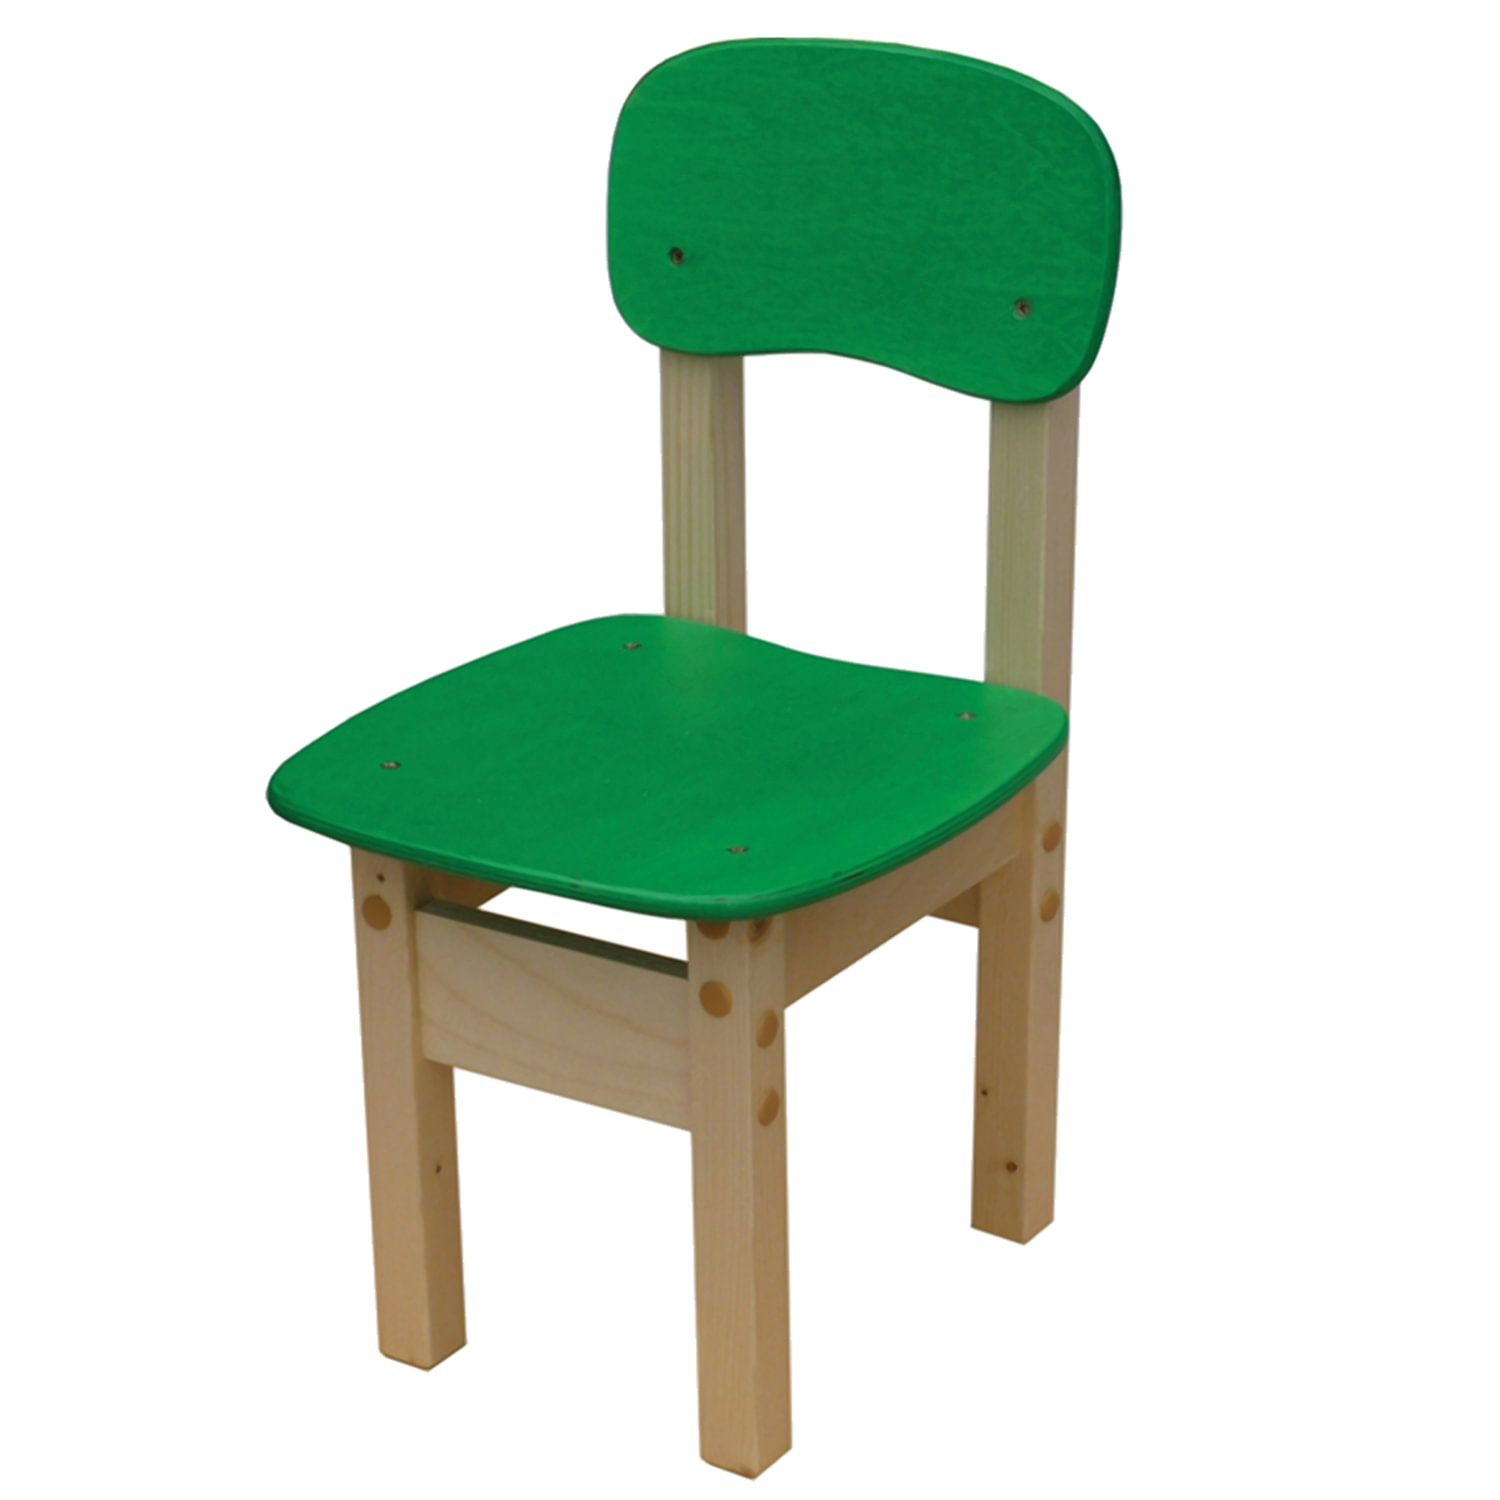 """Children's chair """"Apple-2"""", height 2 (115-130 cm), plywood/tree, green"""